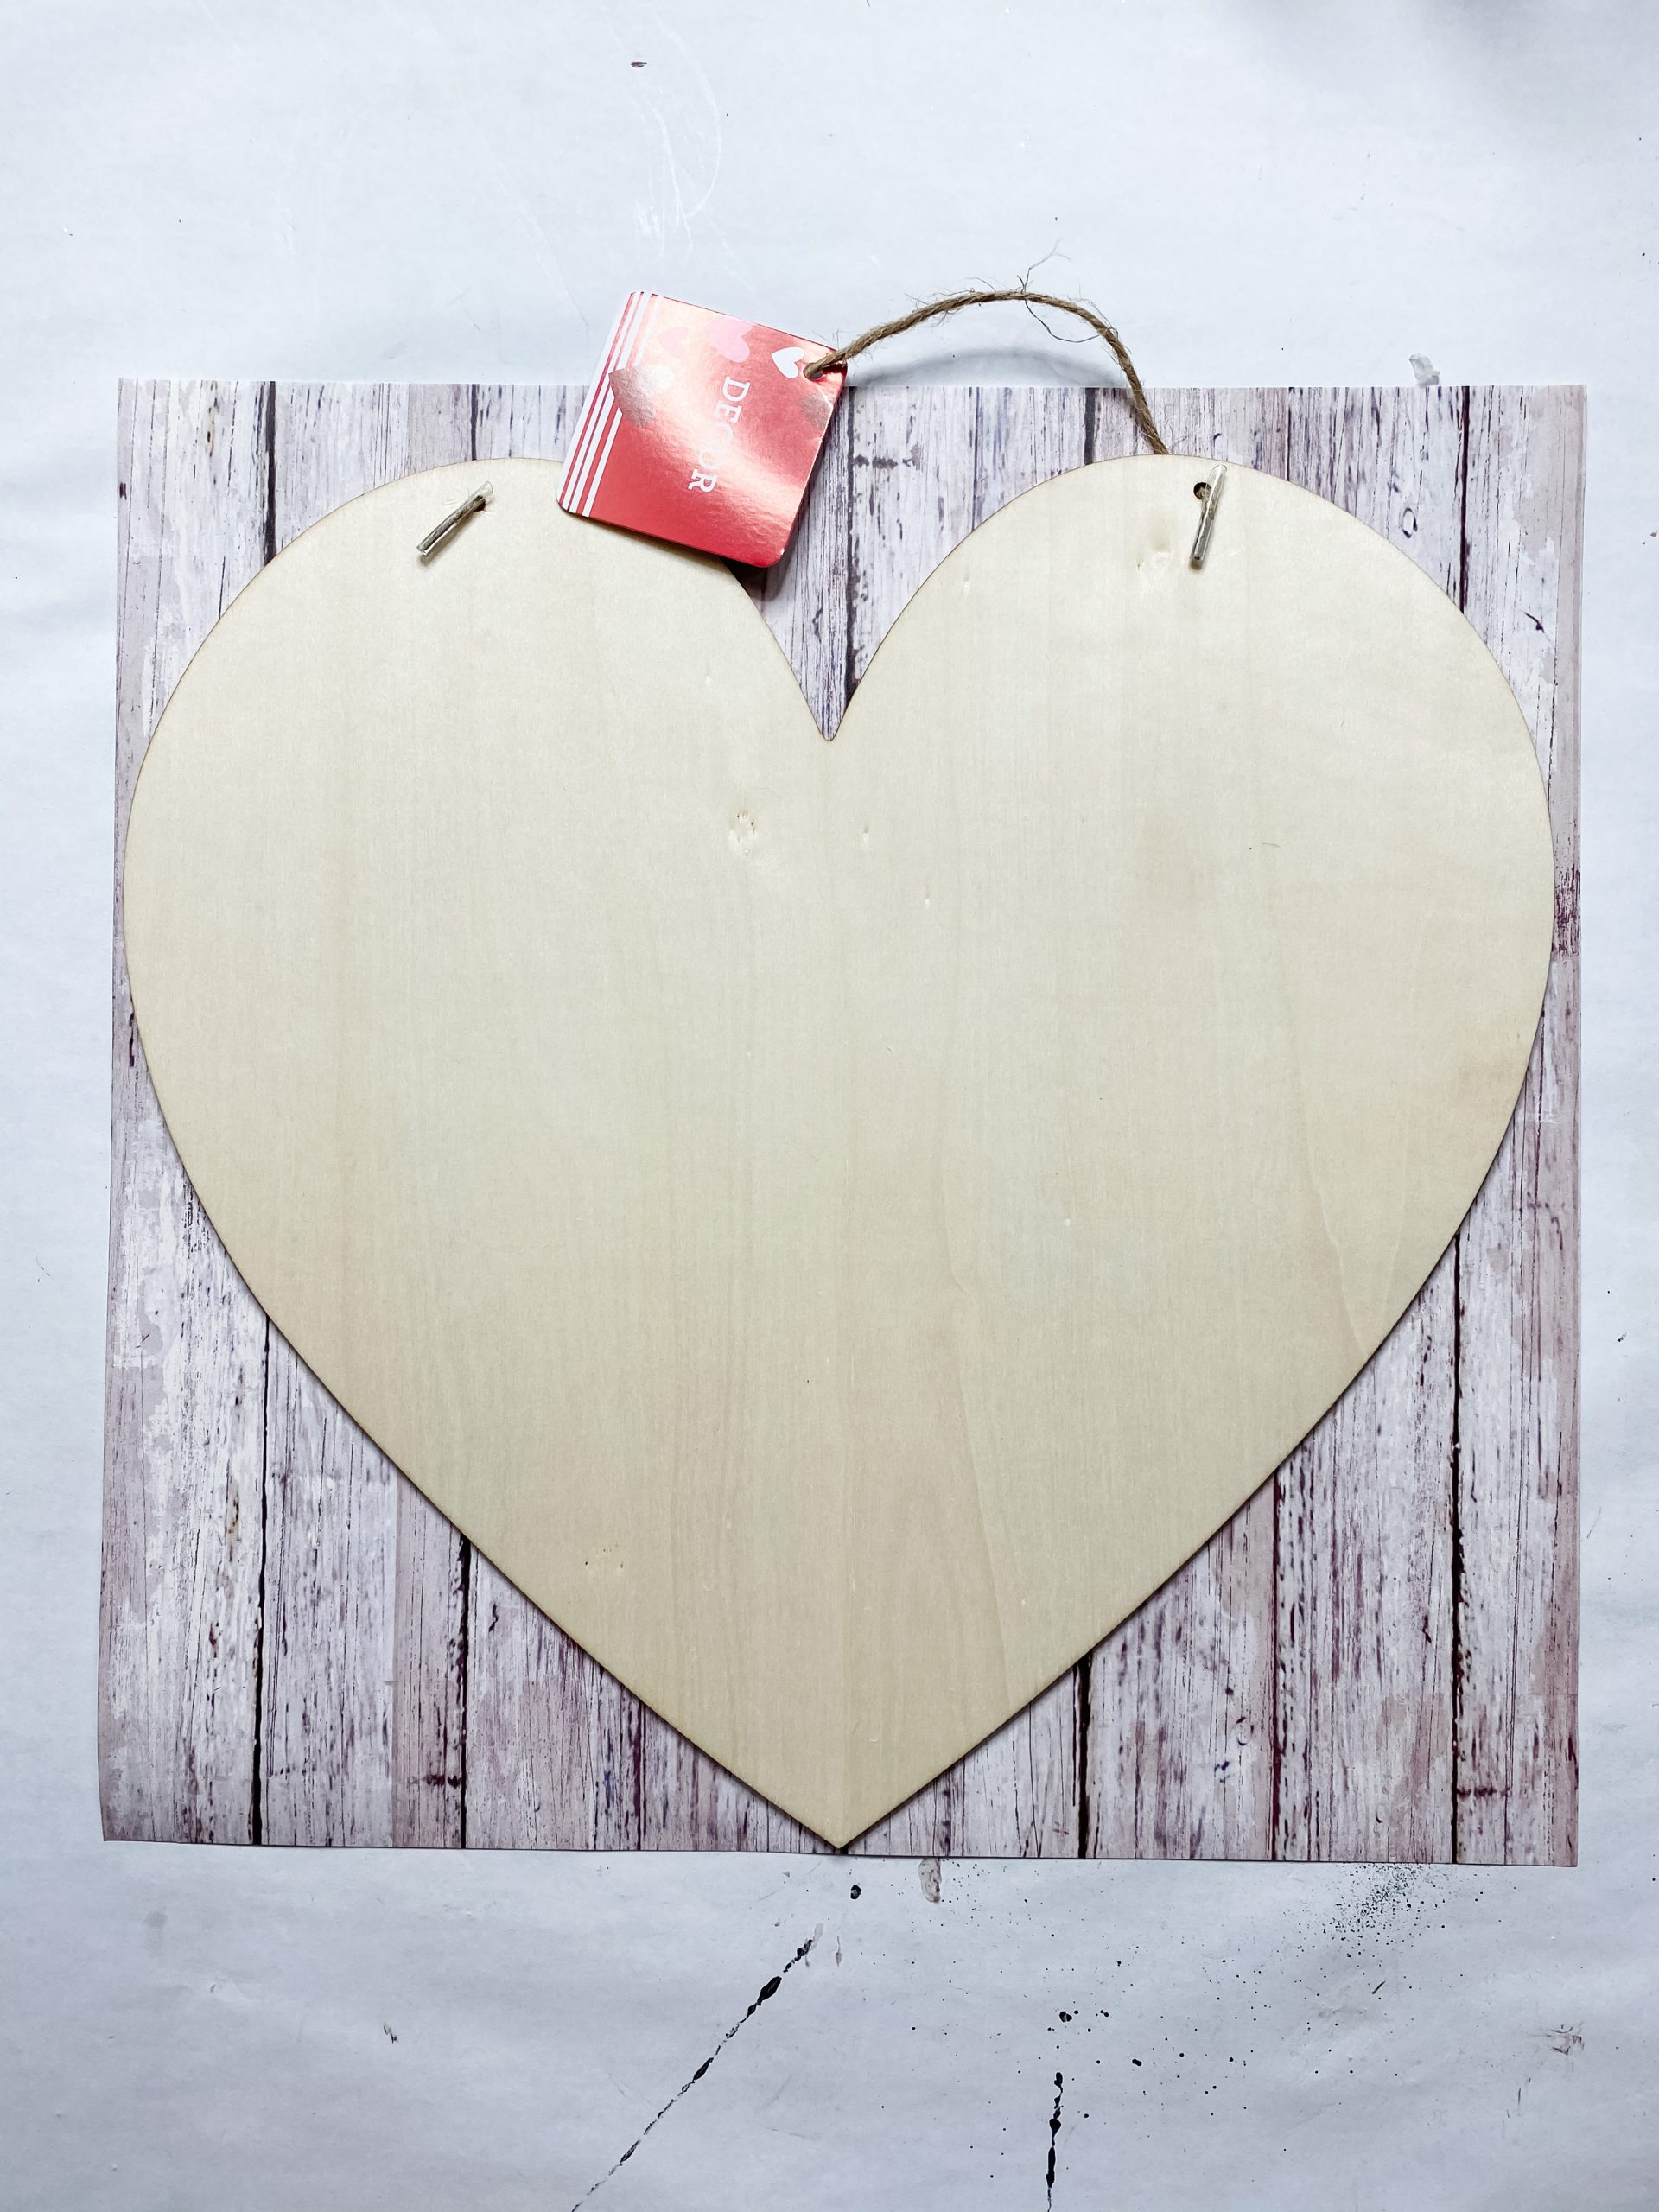 Dollar Tree Crafter's Square wood heart cut out